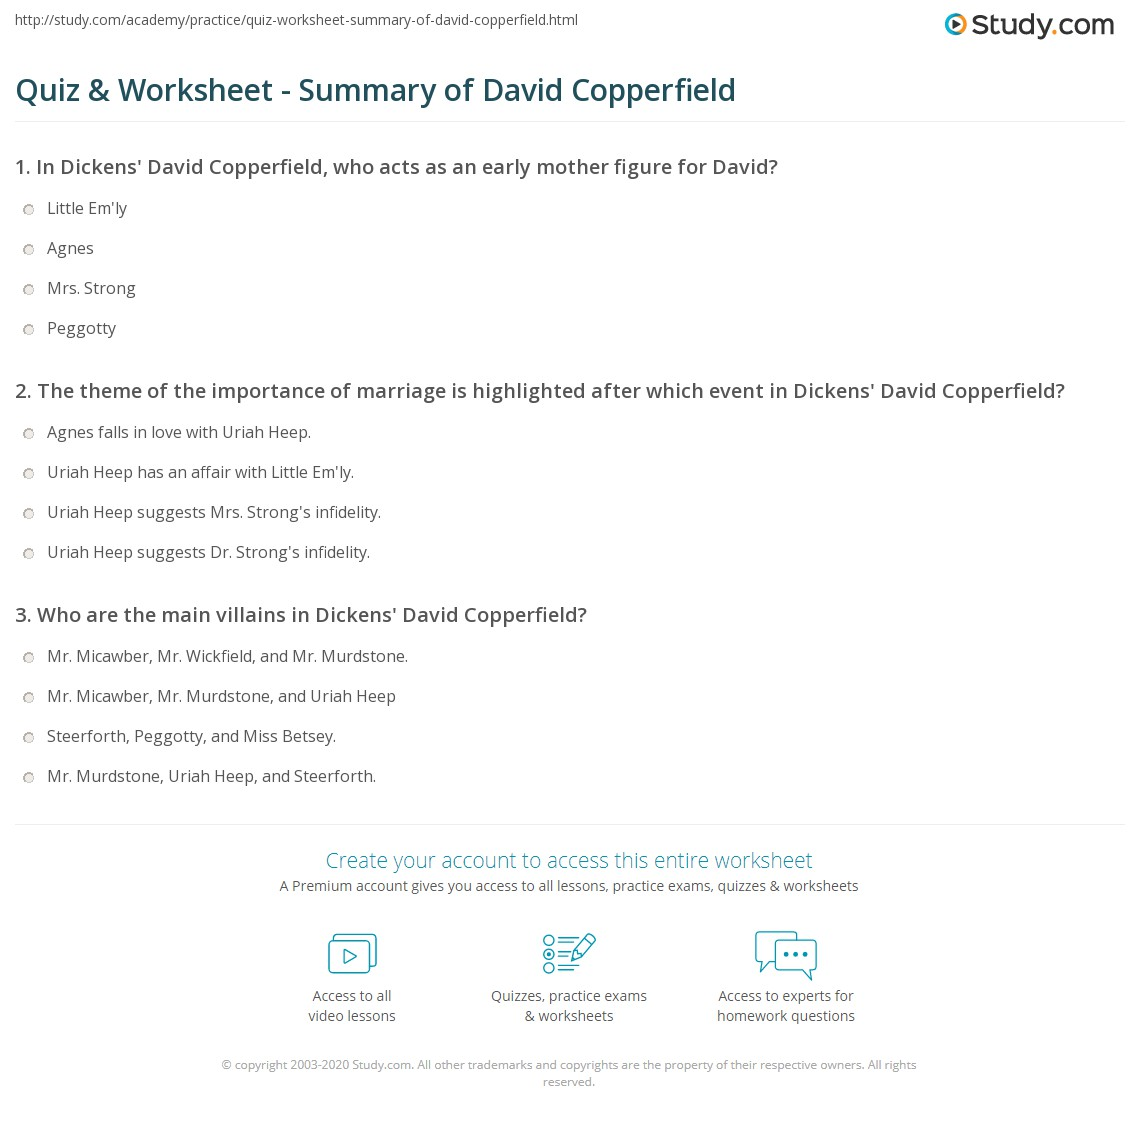 writer of david copperfield david copperfield by charles dickens  quiz worksheet summary of david copperfield com print david copperfield dickens bildungsr worksheet